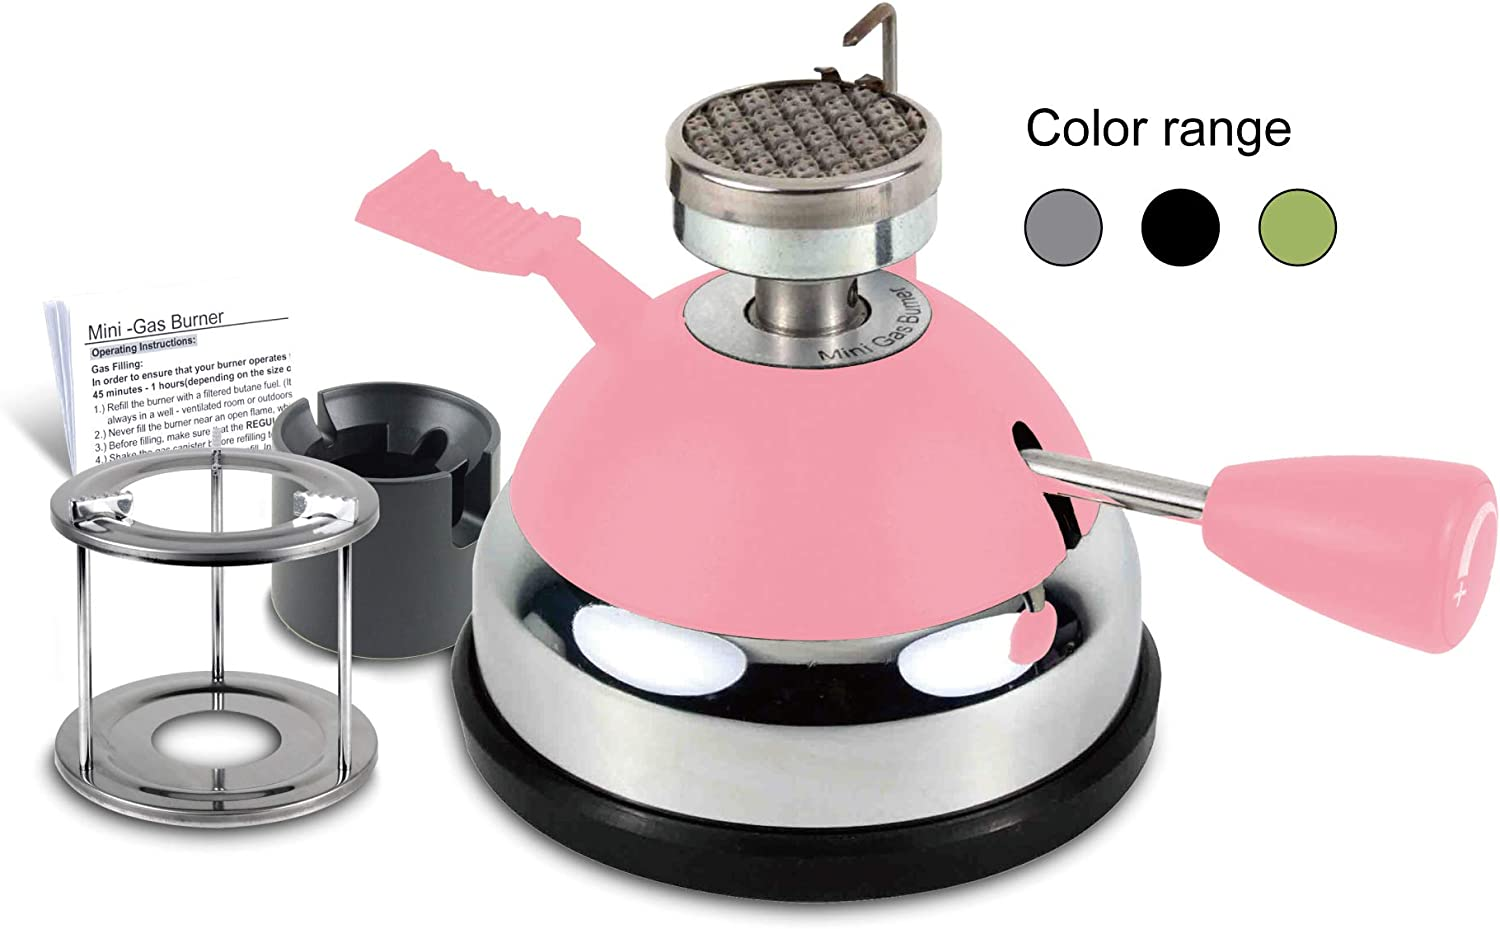 BLUEFIRE Butane Mini Burner for Tabletop Siphons Syphon, w Furnace Stand and Assembly Rack,Ceramic Windproof Torch Head,Portable Cooking Stove,Coffee Espresso Maker,Chafing,Soup Tureens,Fondue (Pink)